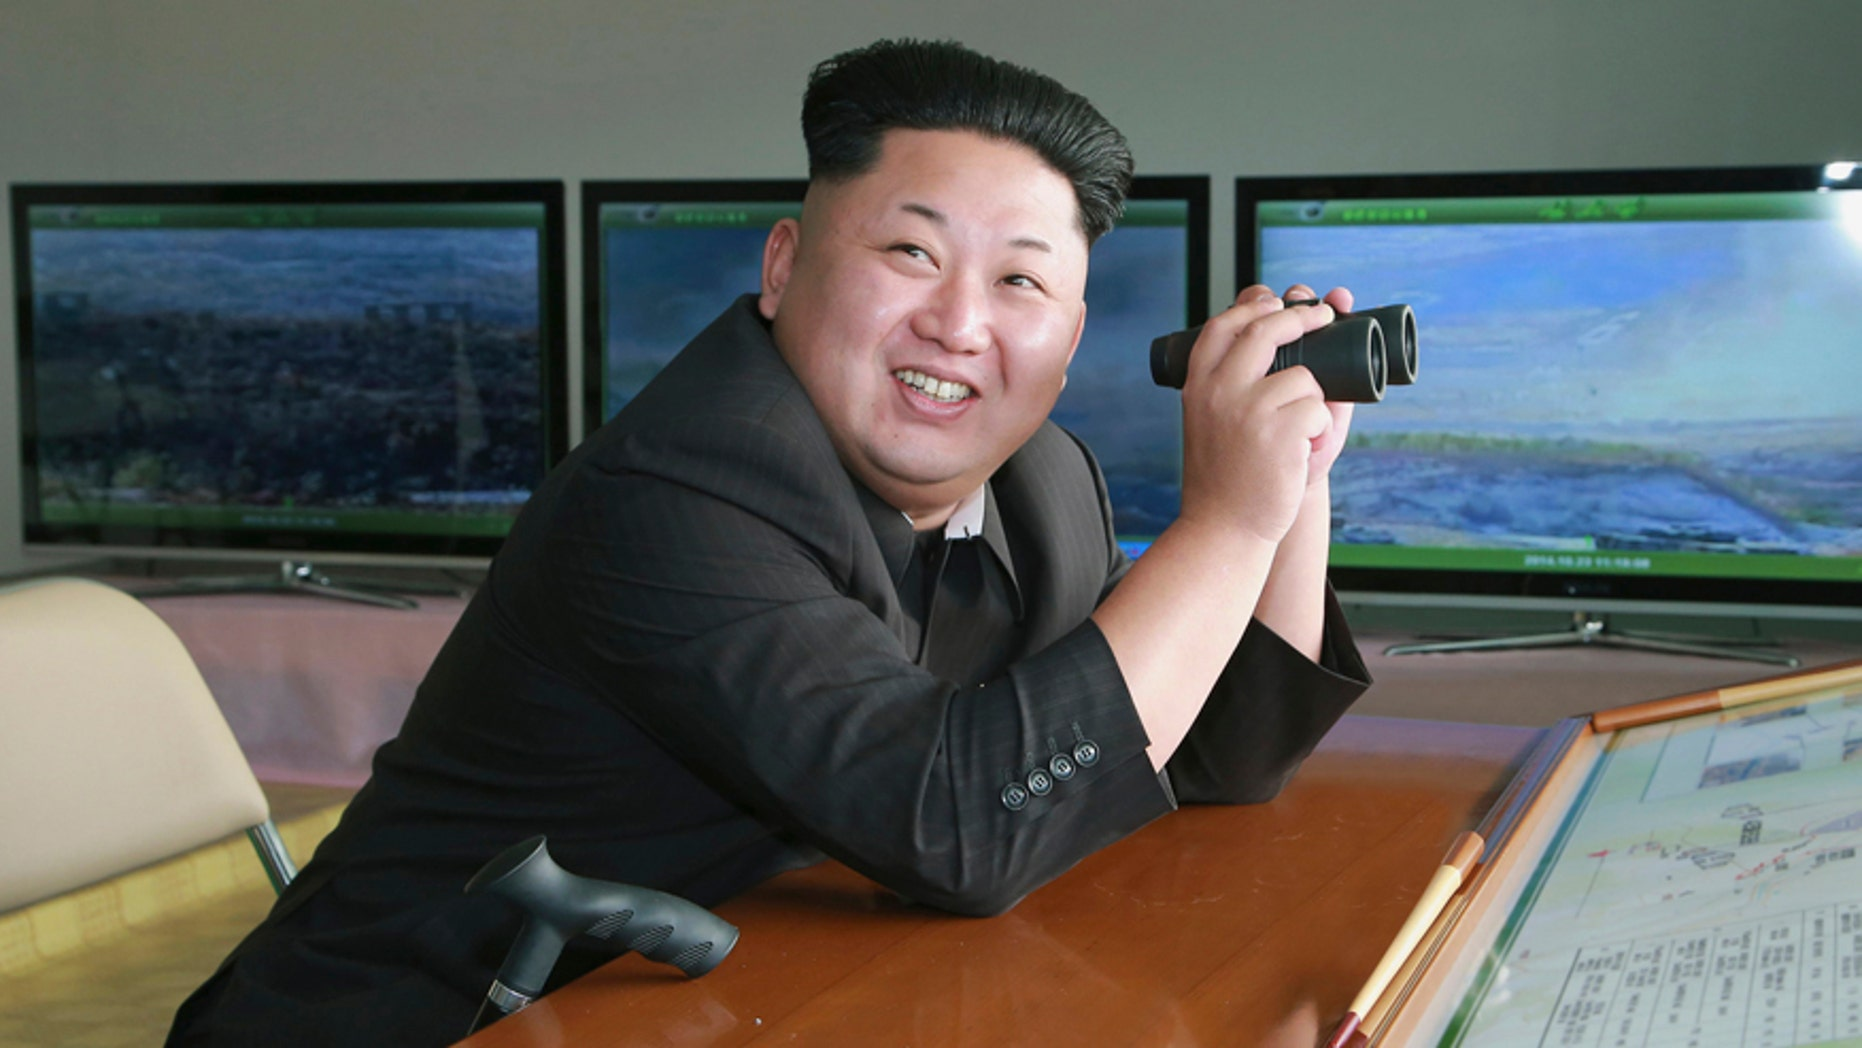 File photo - North Korean leader Kim Jong Un attends a military drill at an undisclosed location in this undated photo released by North Korea's Korean Central News Agency (KCNA) in Pyongyang Oct. 24, 2014.